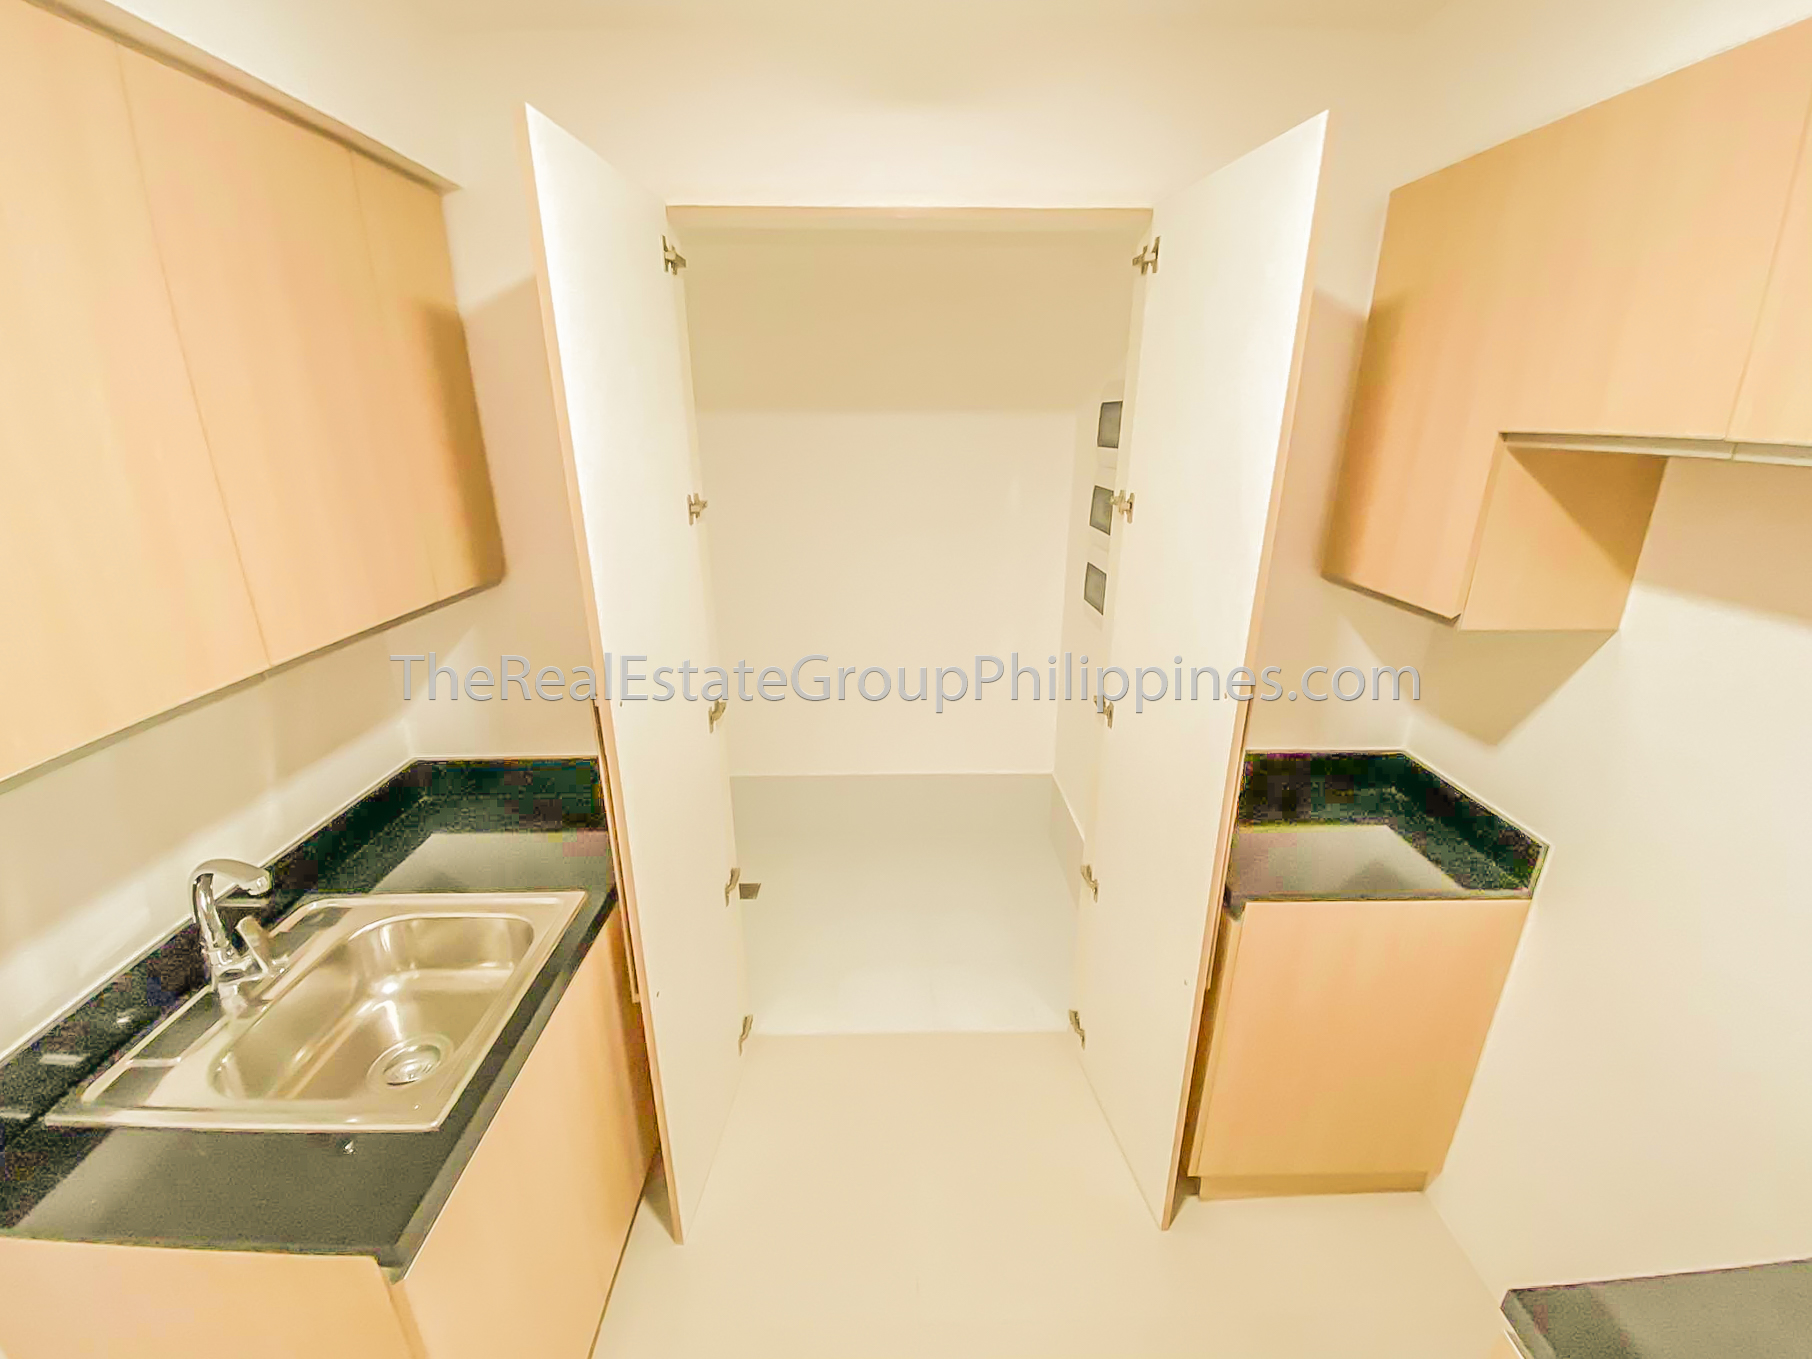 1BR Condo For Rent Lease The Veranda Arca South (5 of 12)